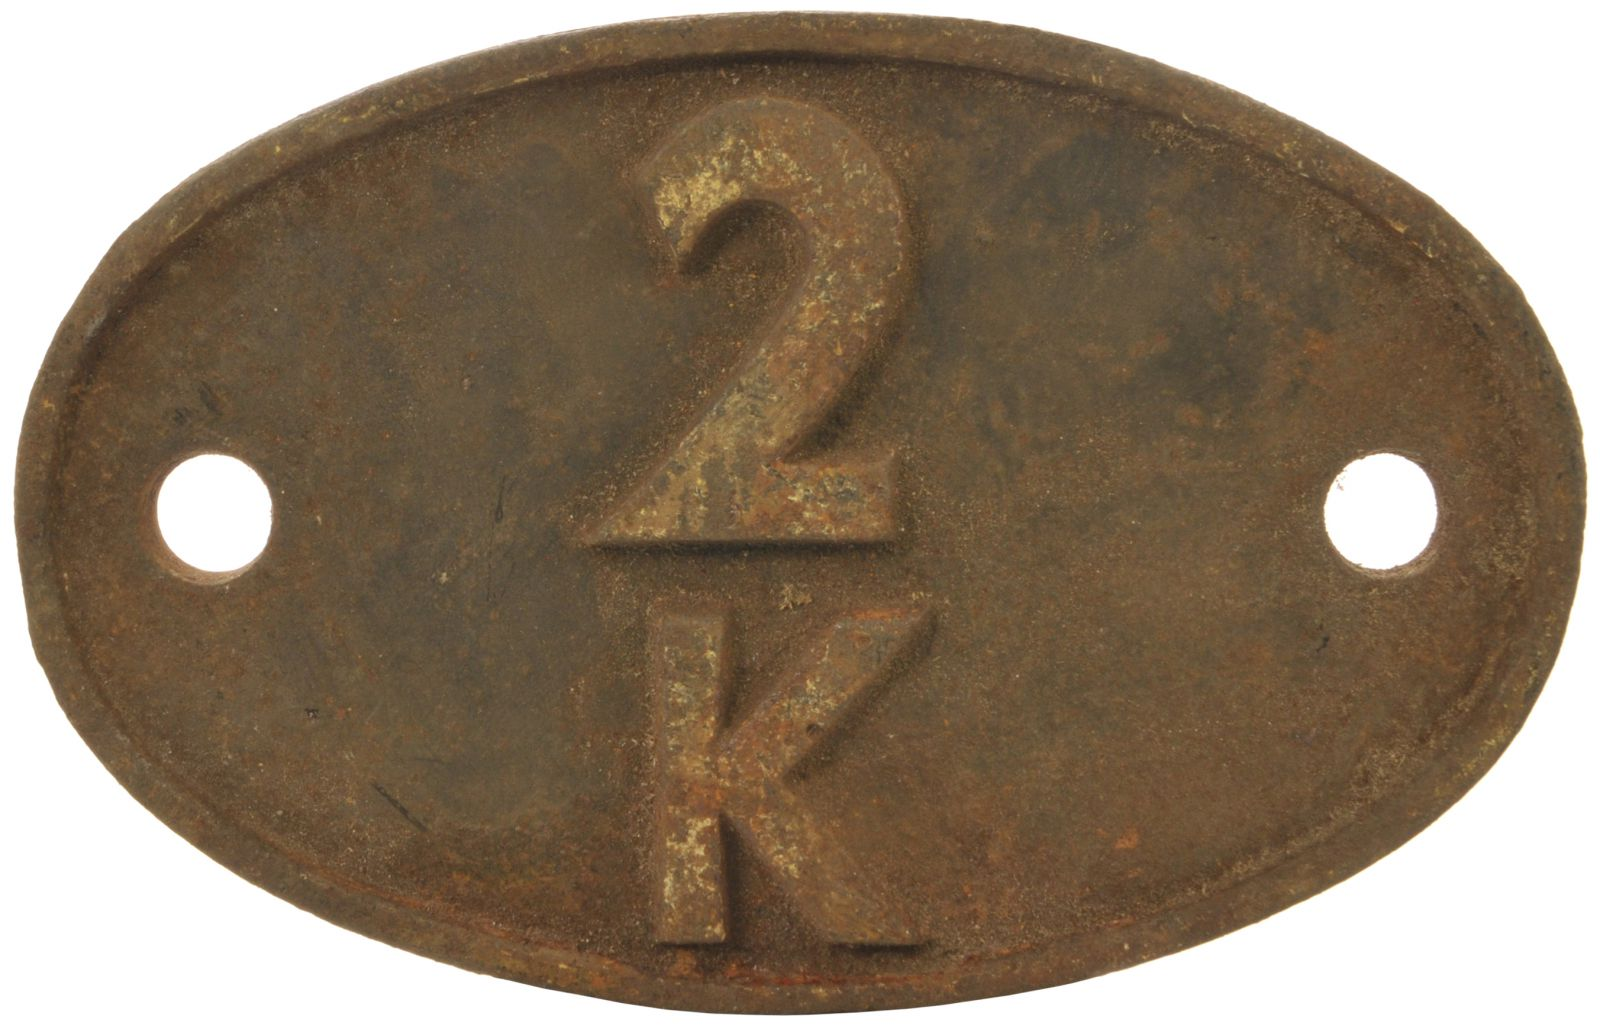 Lot 4 - Railway Locomotive Shedplates, 2K: A shedplate 2K Bushbury (September 1963 to April 1965). This ex